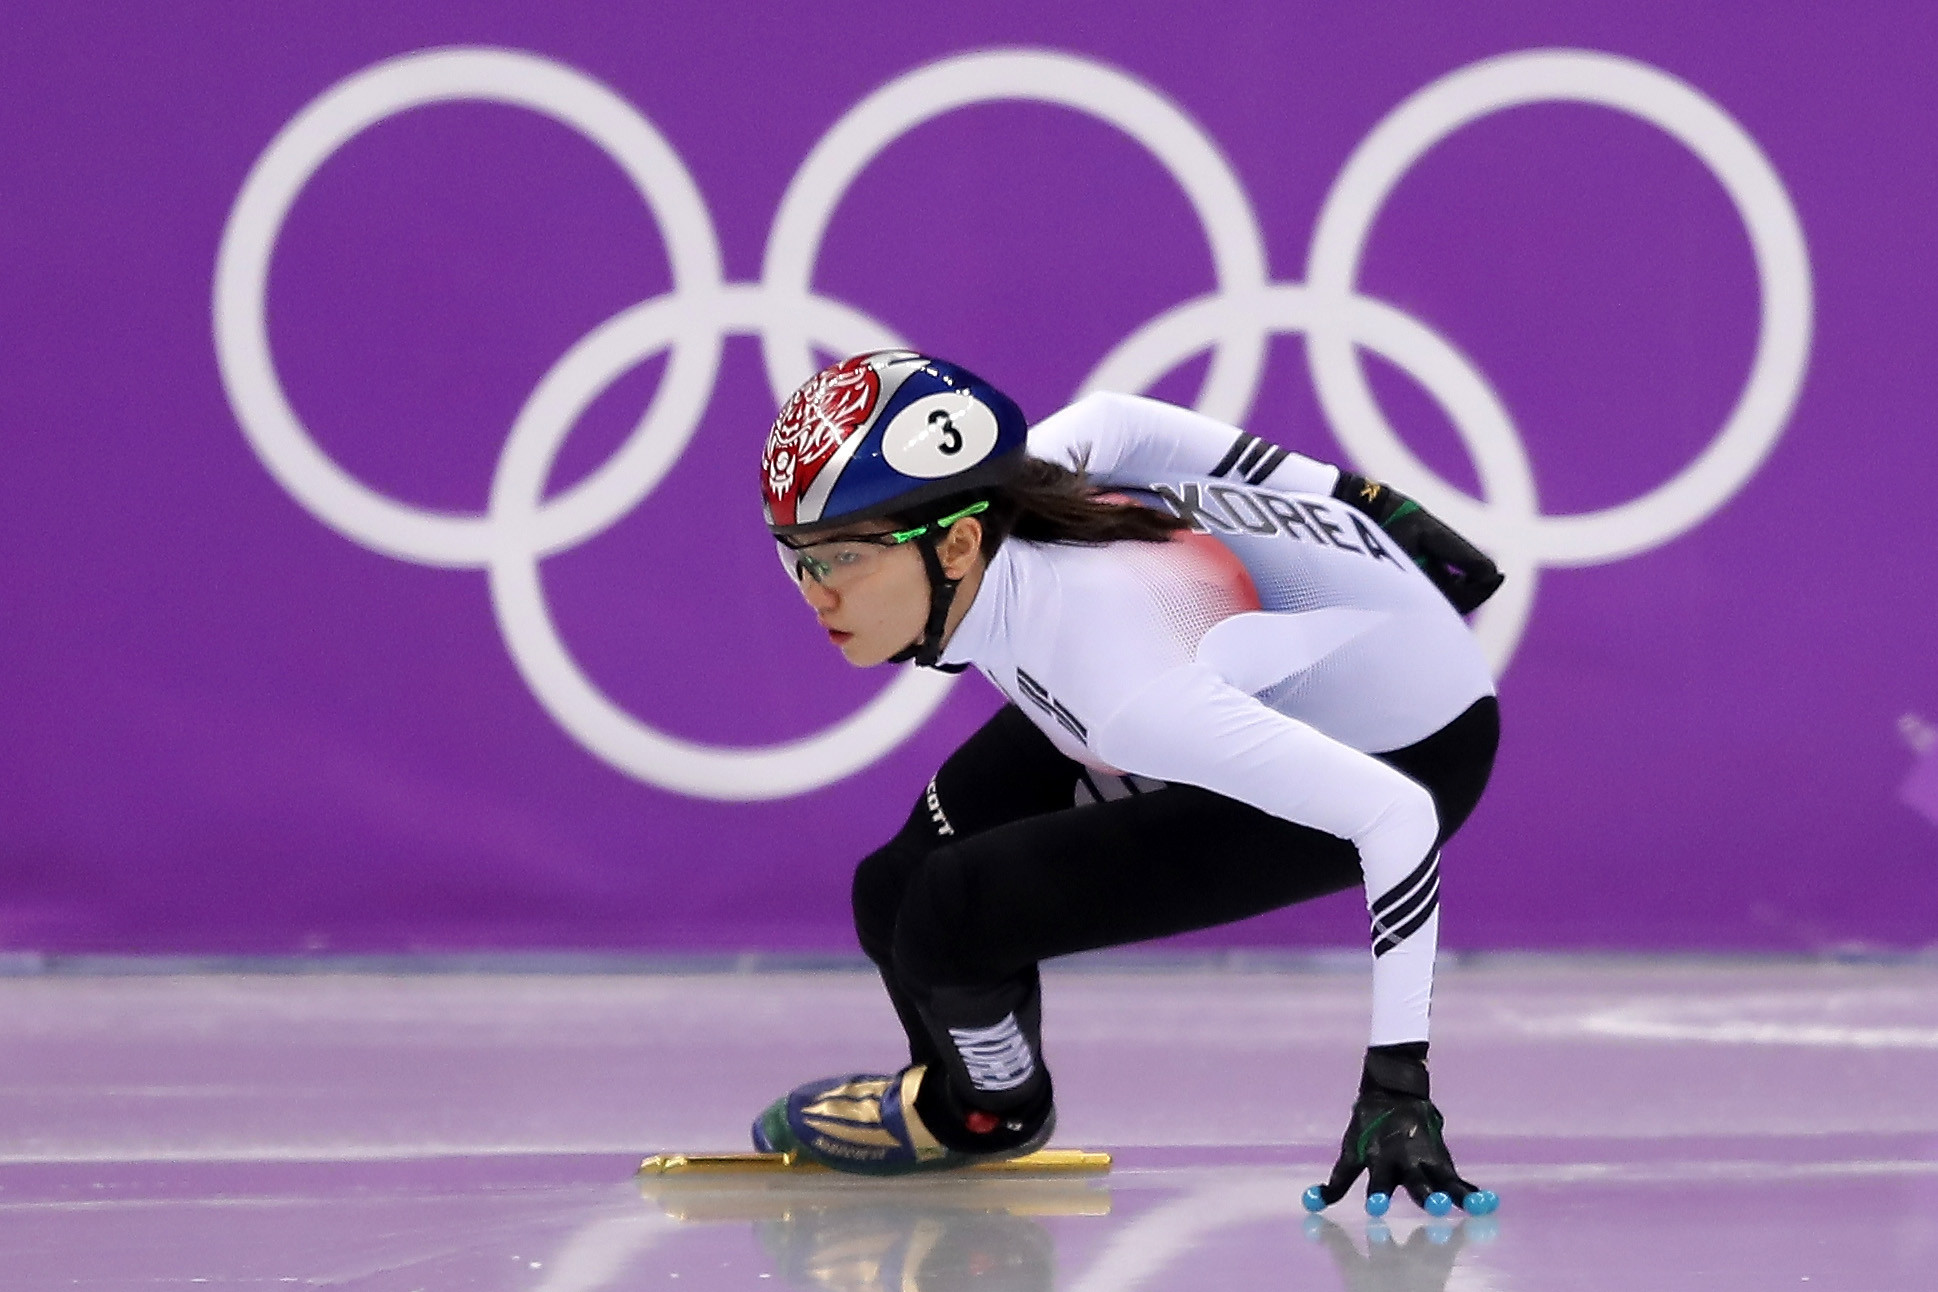 South Korea's Shim Suk-hee, who has accused former coach Cho Jae-beom of sexually and physically assaulting her, is Olympic champion in the 3,000m relay short track speed skating event ©Getty Images